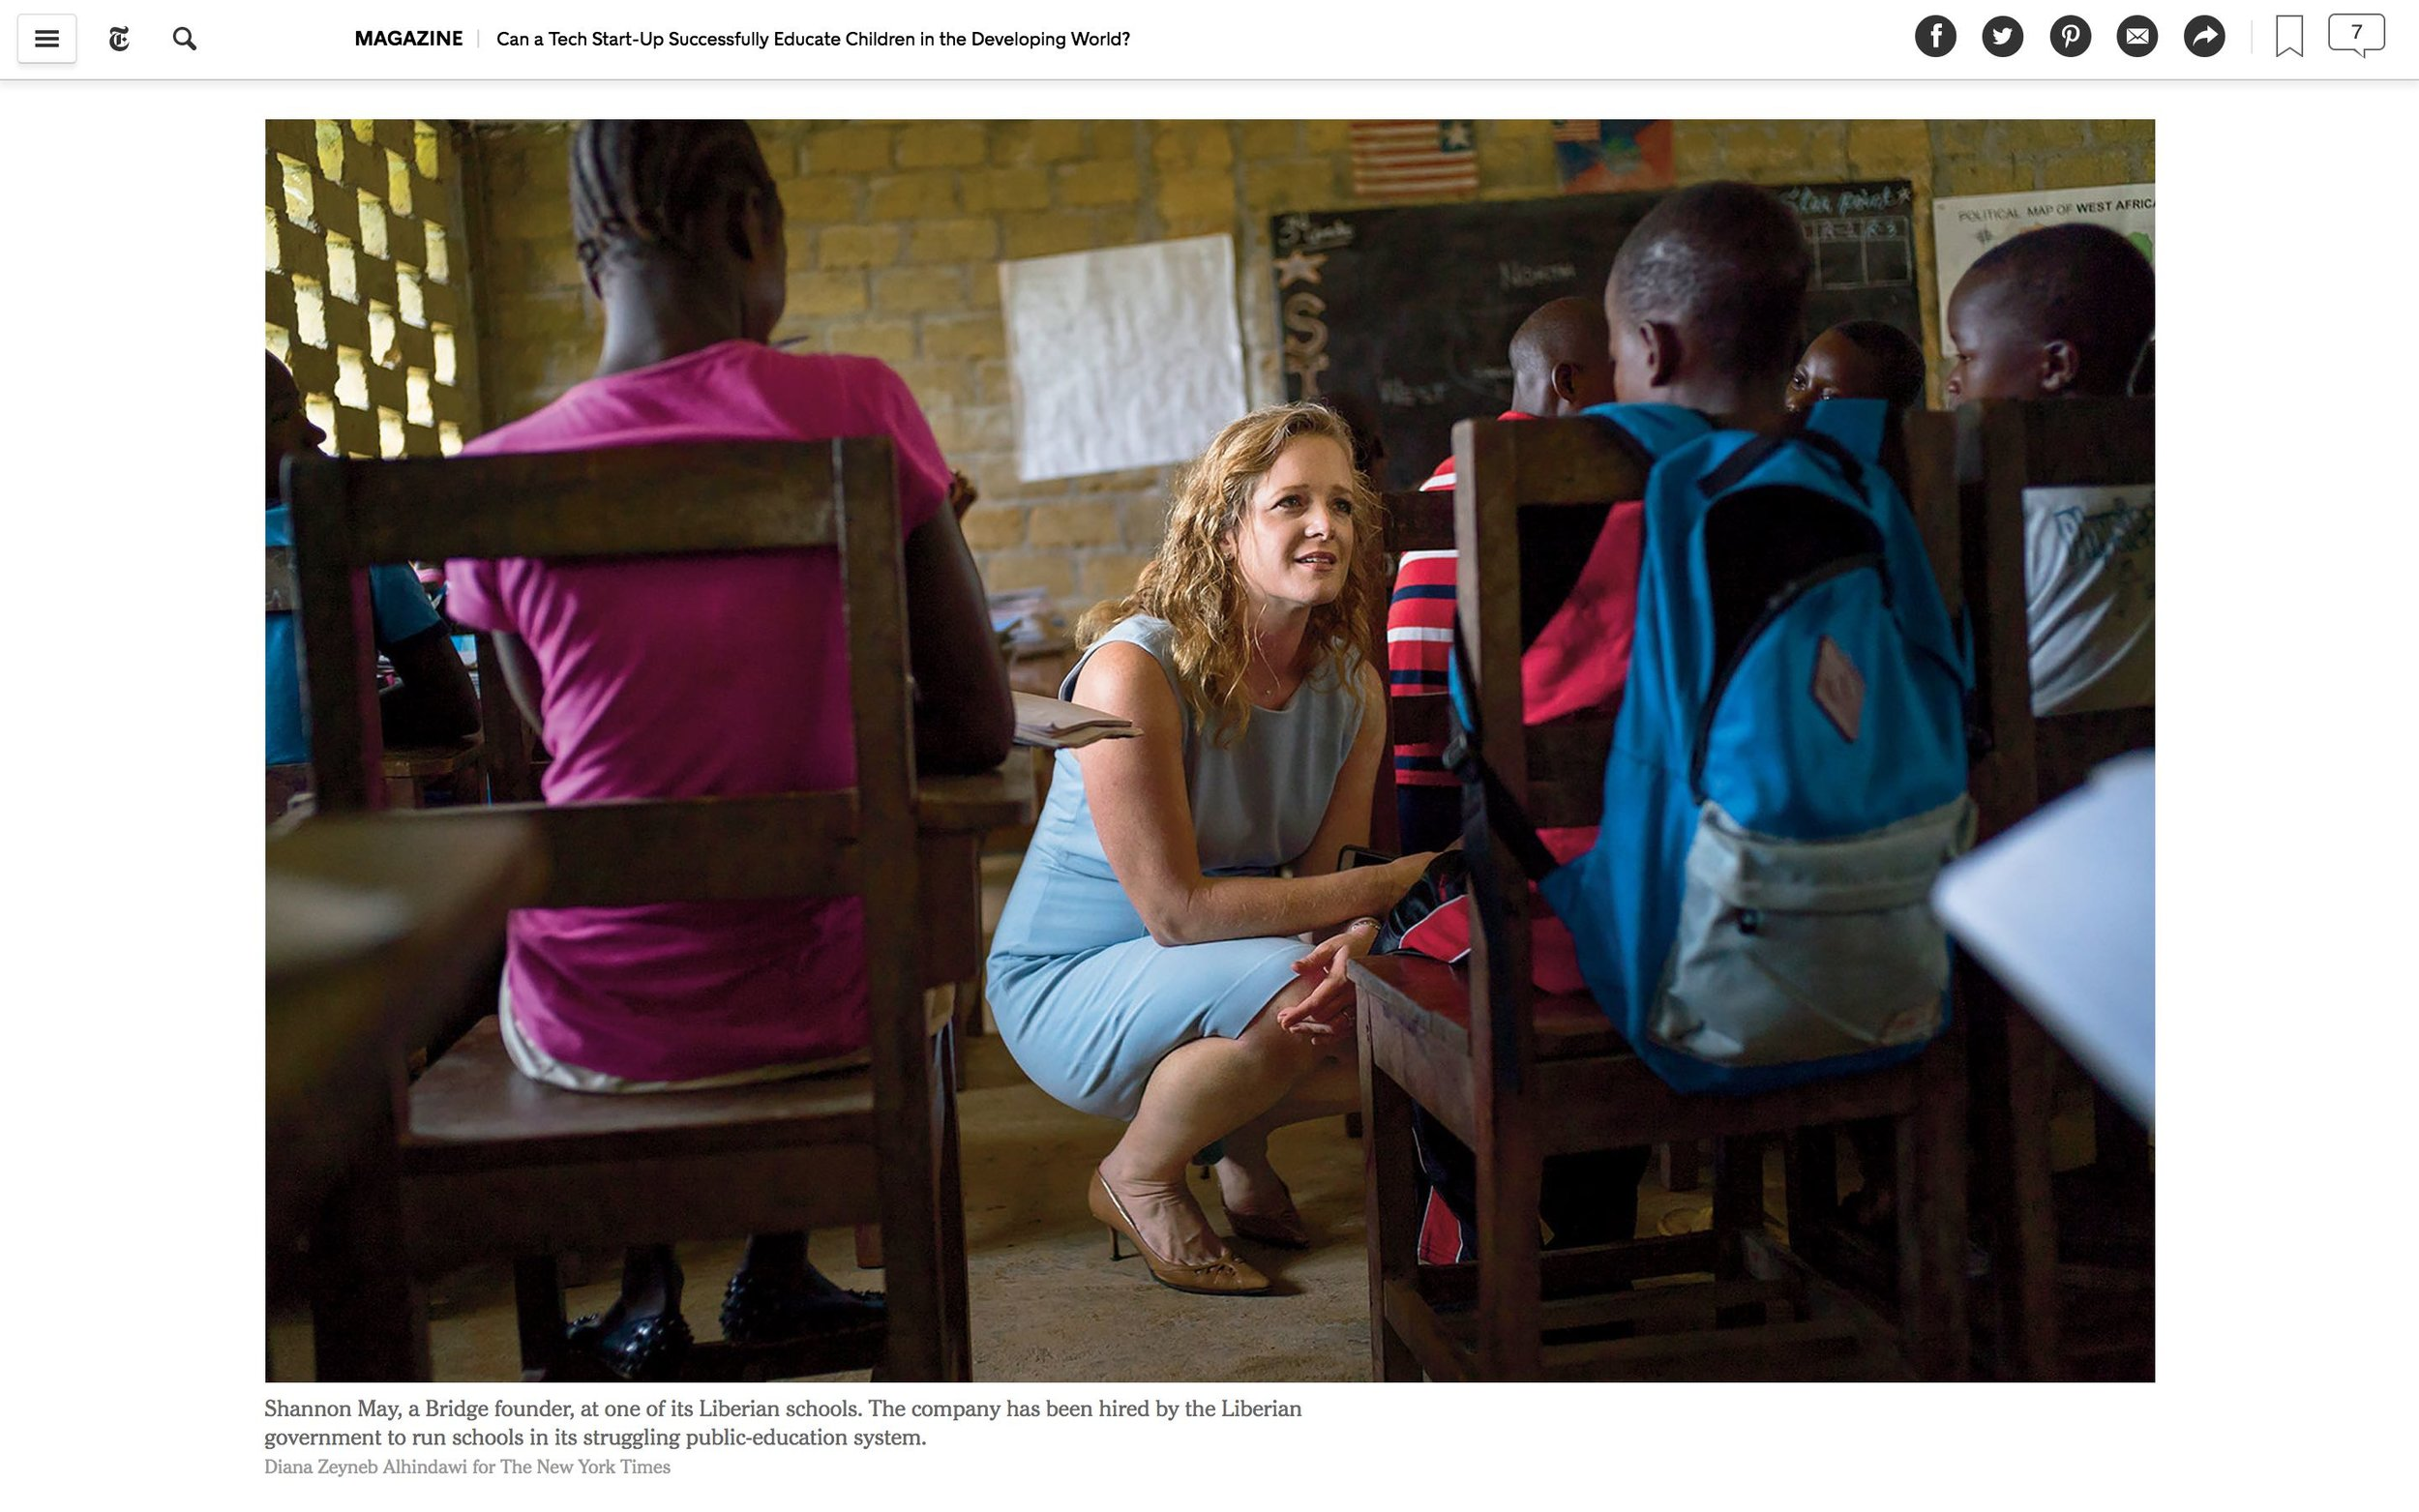 CLICK on title for full article     Can a tech start-up successfully educate children in the developing world?  | The New York Times Magazine, Jun 27, 2017   (Image 3 of 9)